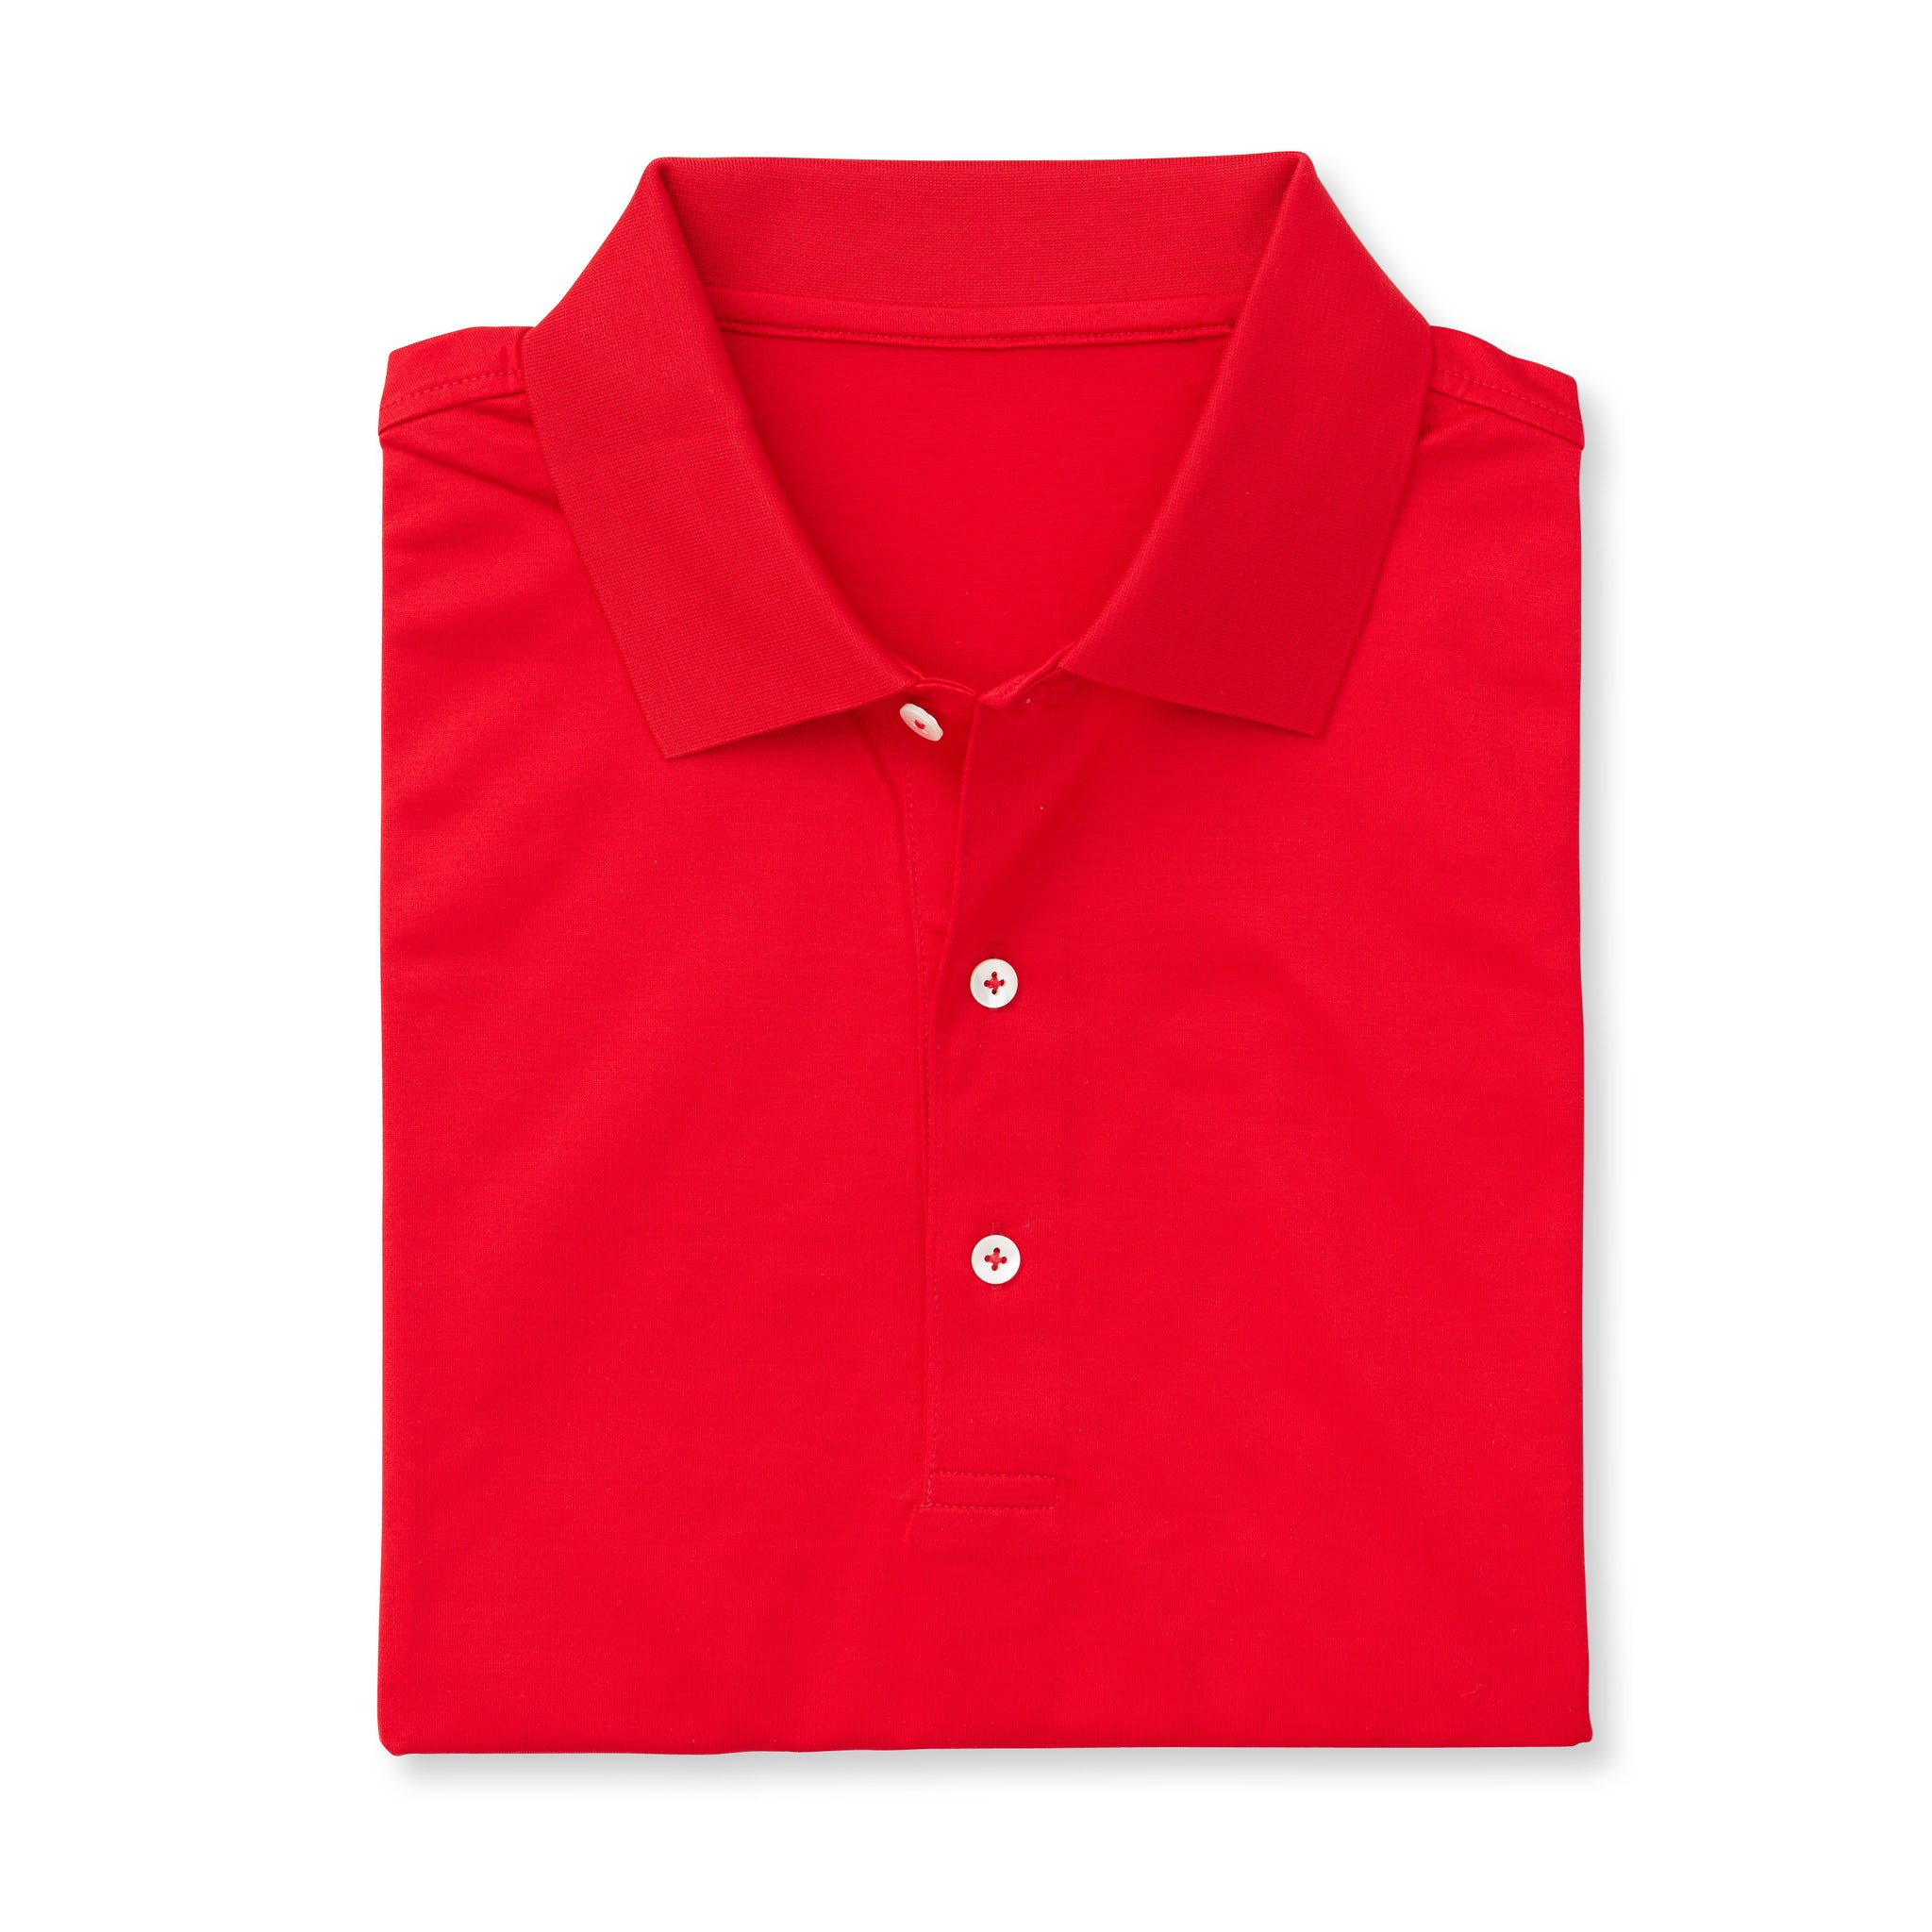 SUPIMA Short Sleeve Mercerized Polo - Patriot Red IS62200